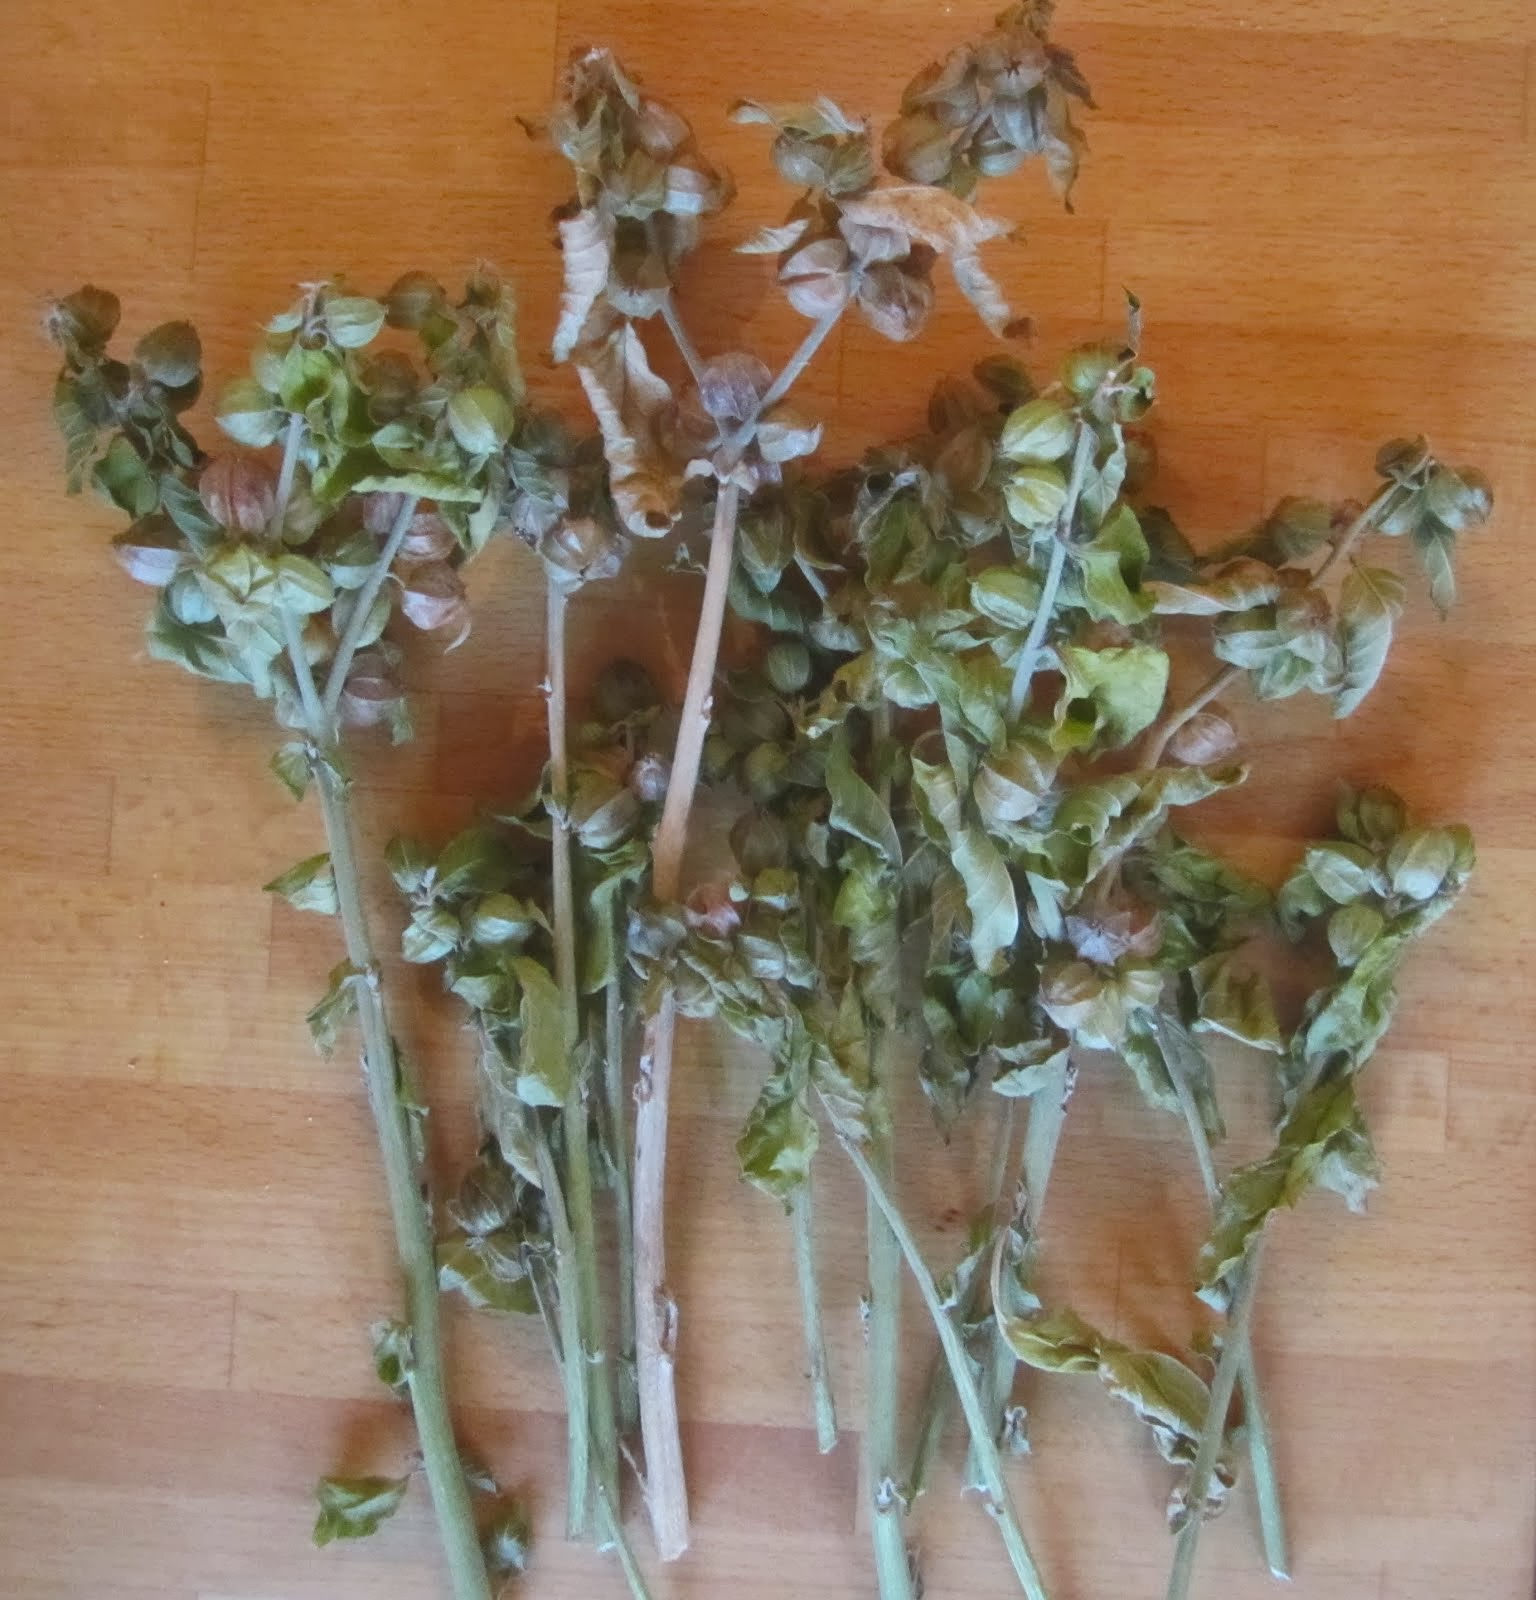 Ashwagandha fruit stems